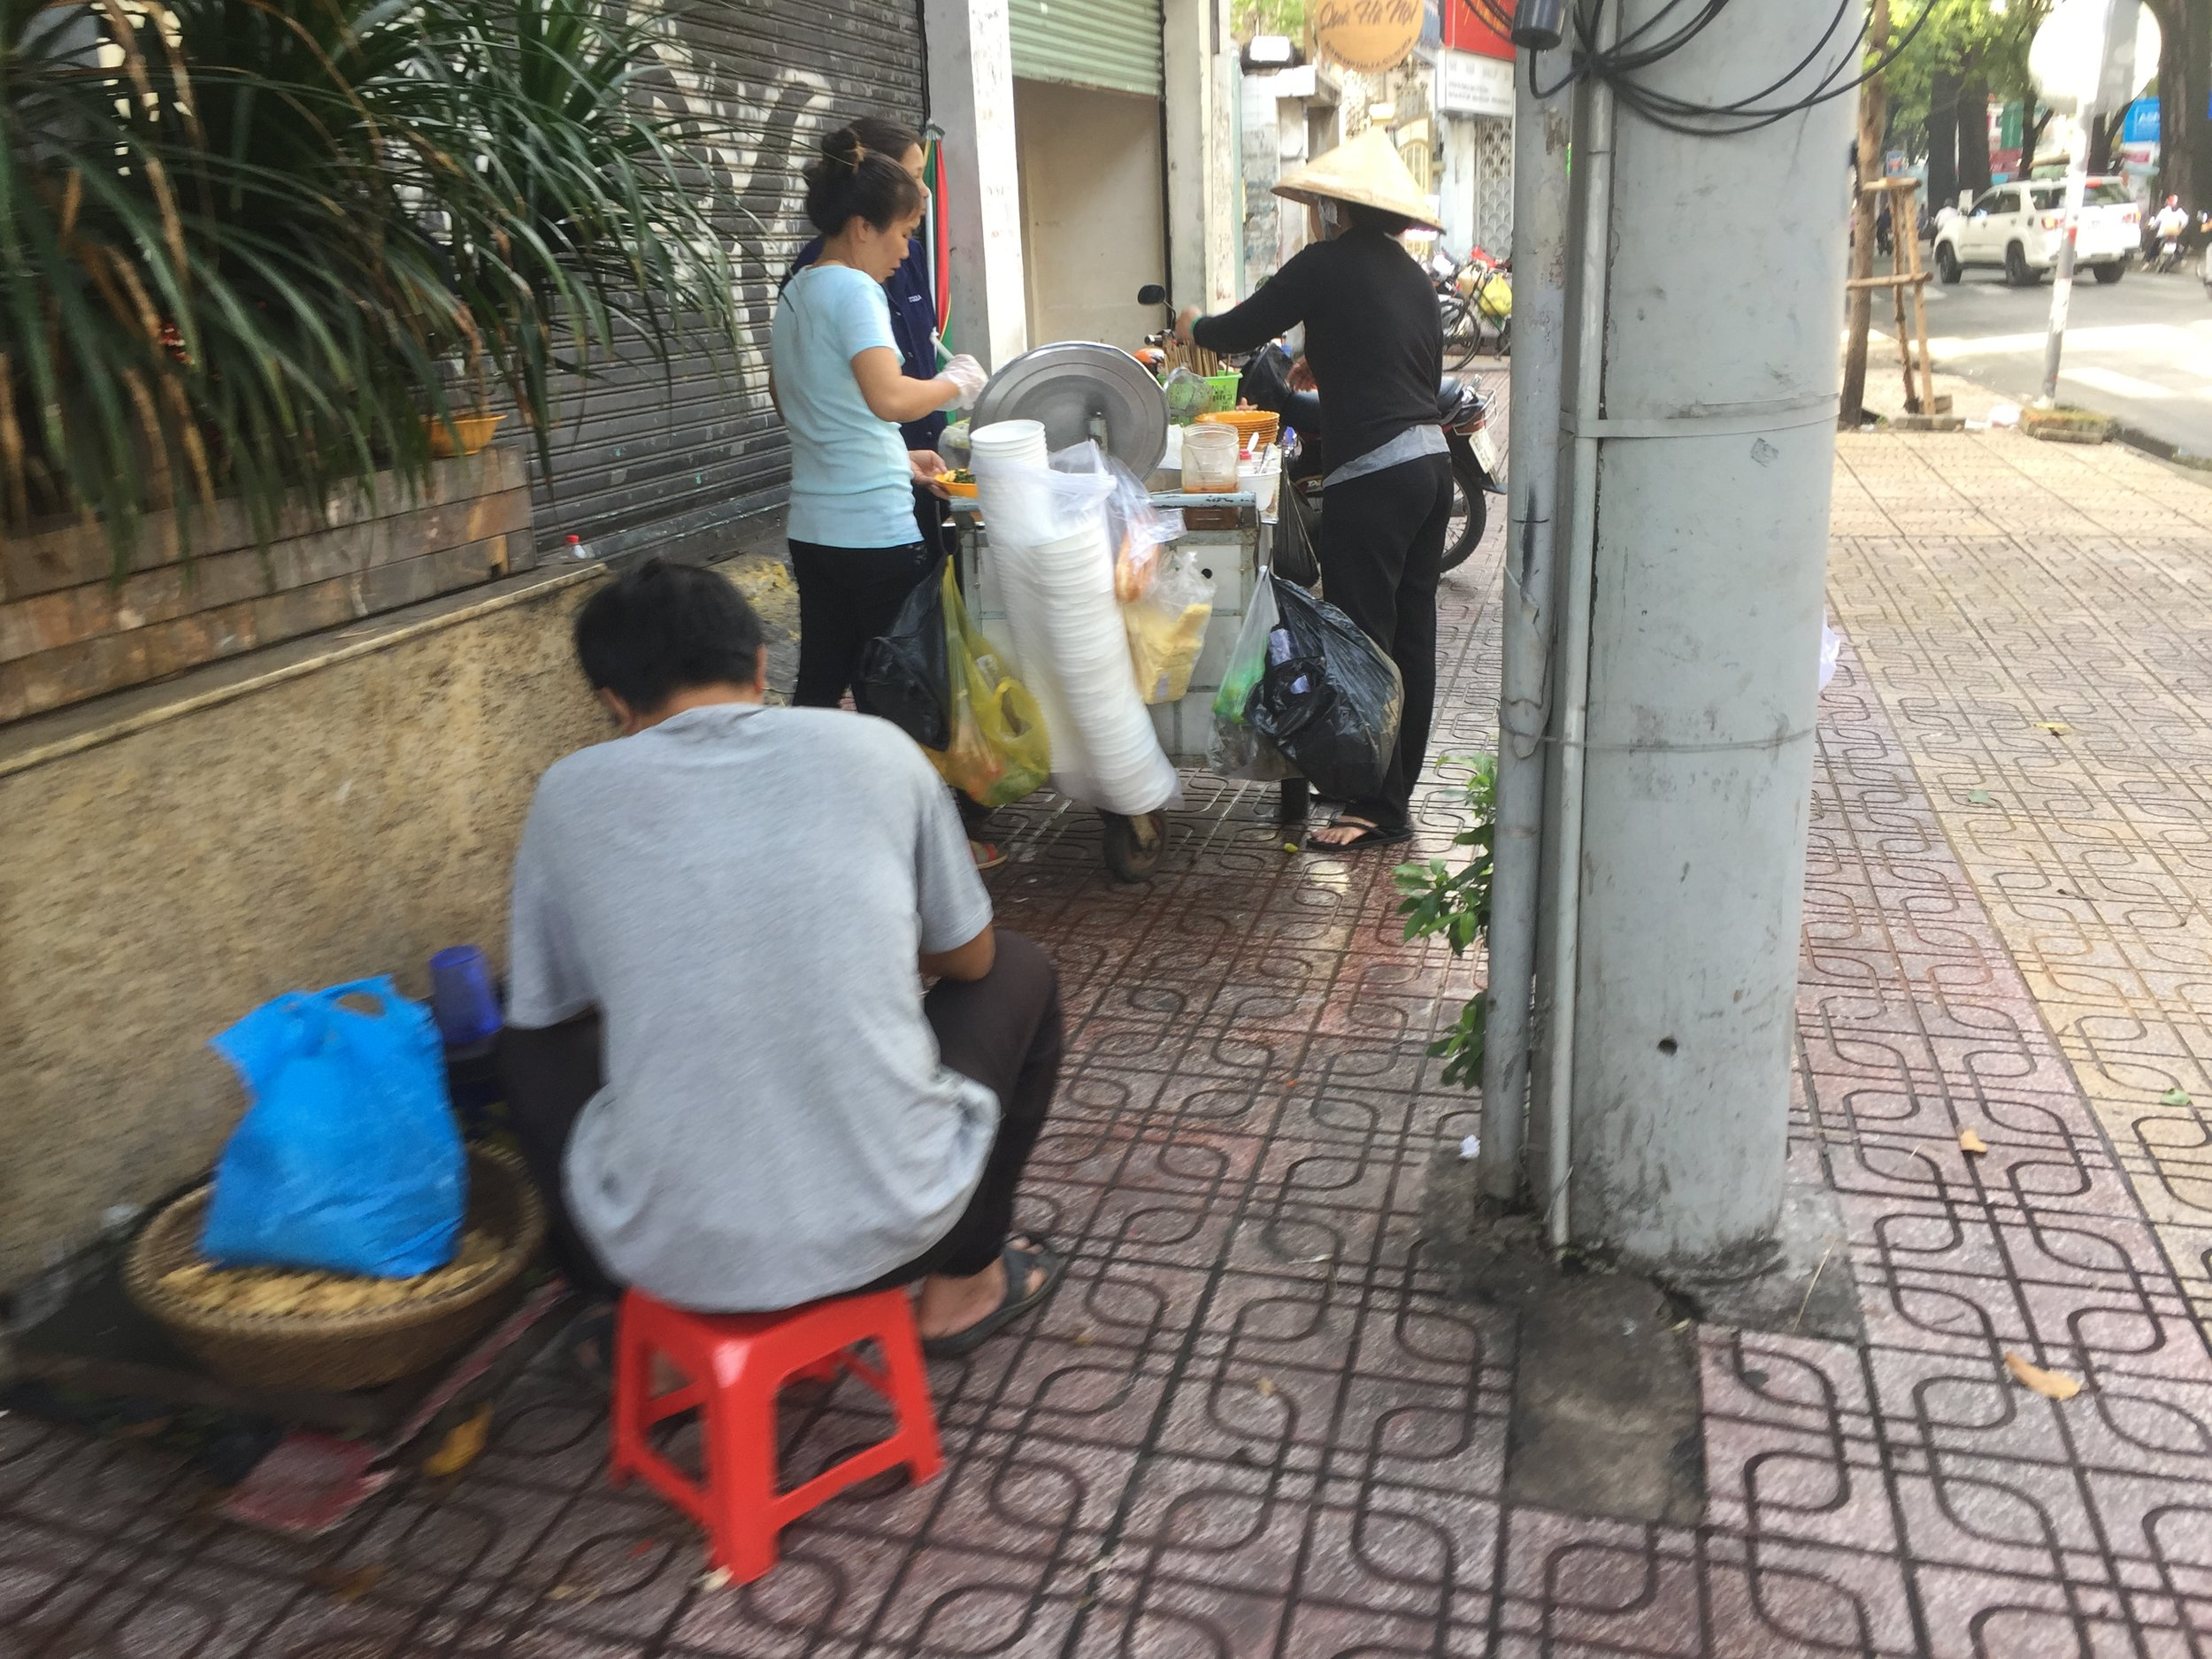 Avoiding street food served on plastic and styrofoam is a challenge, but it can be done.